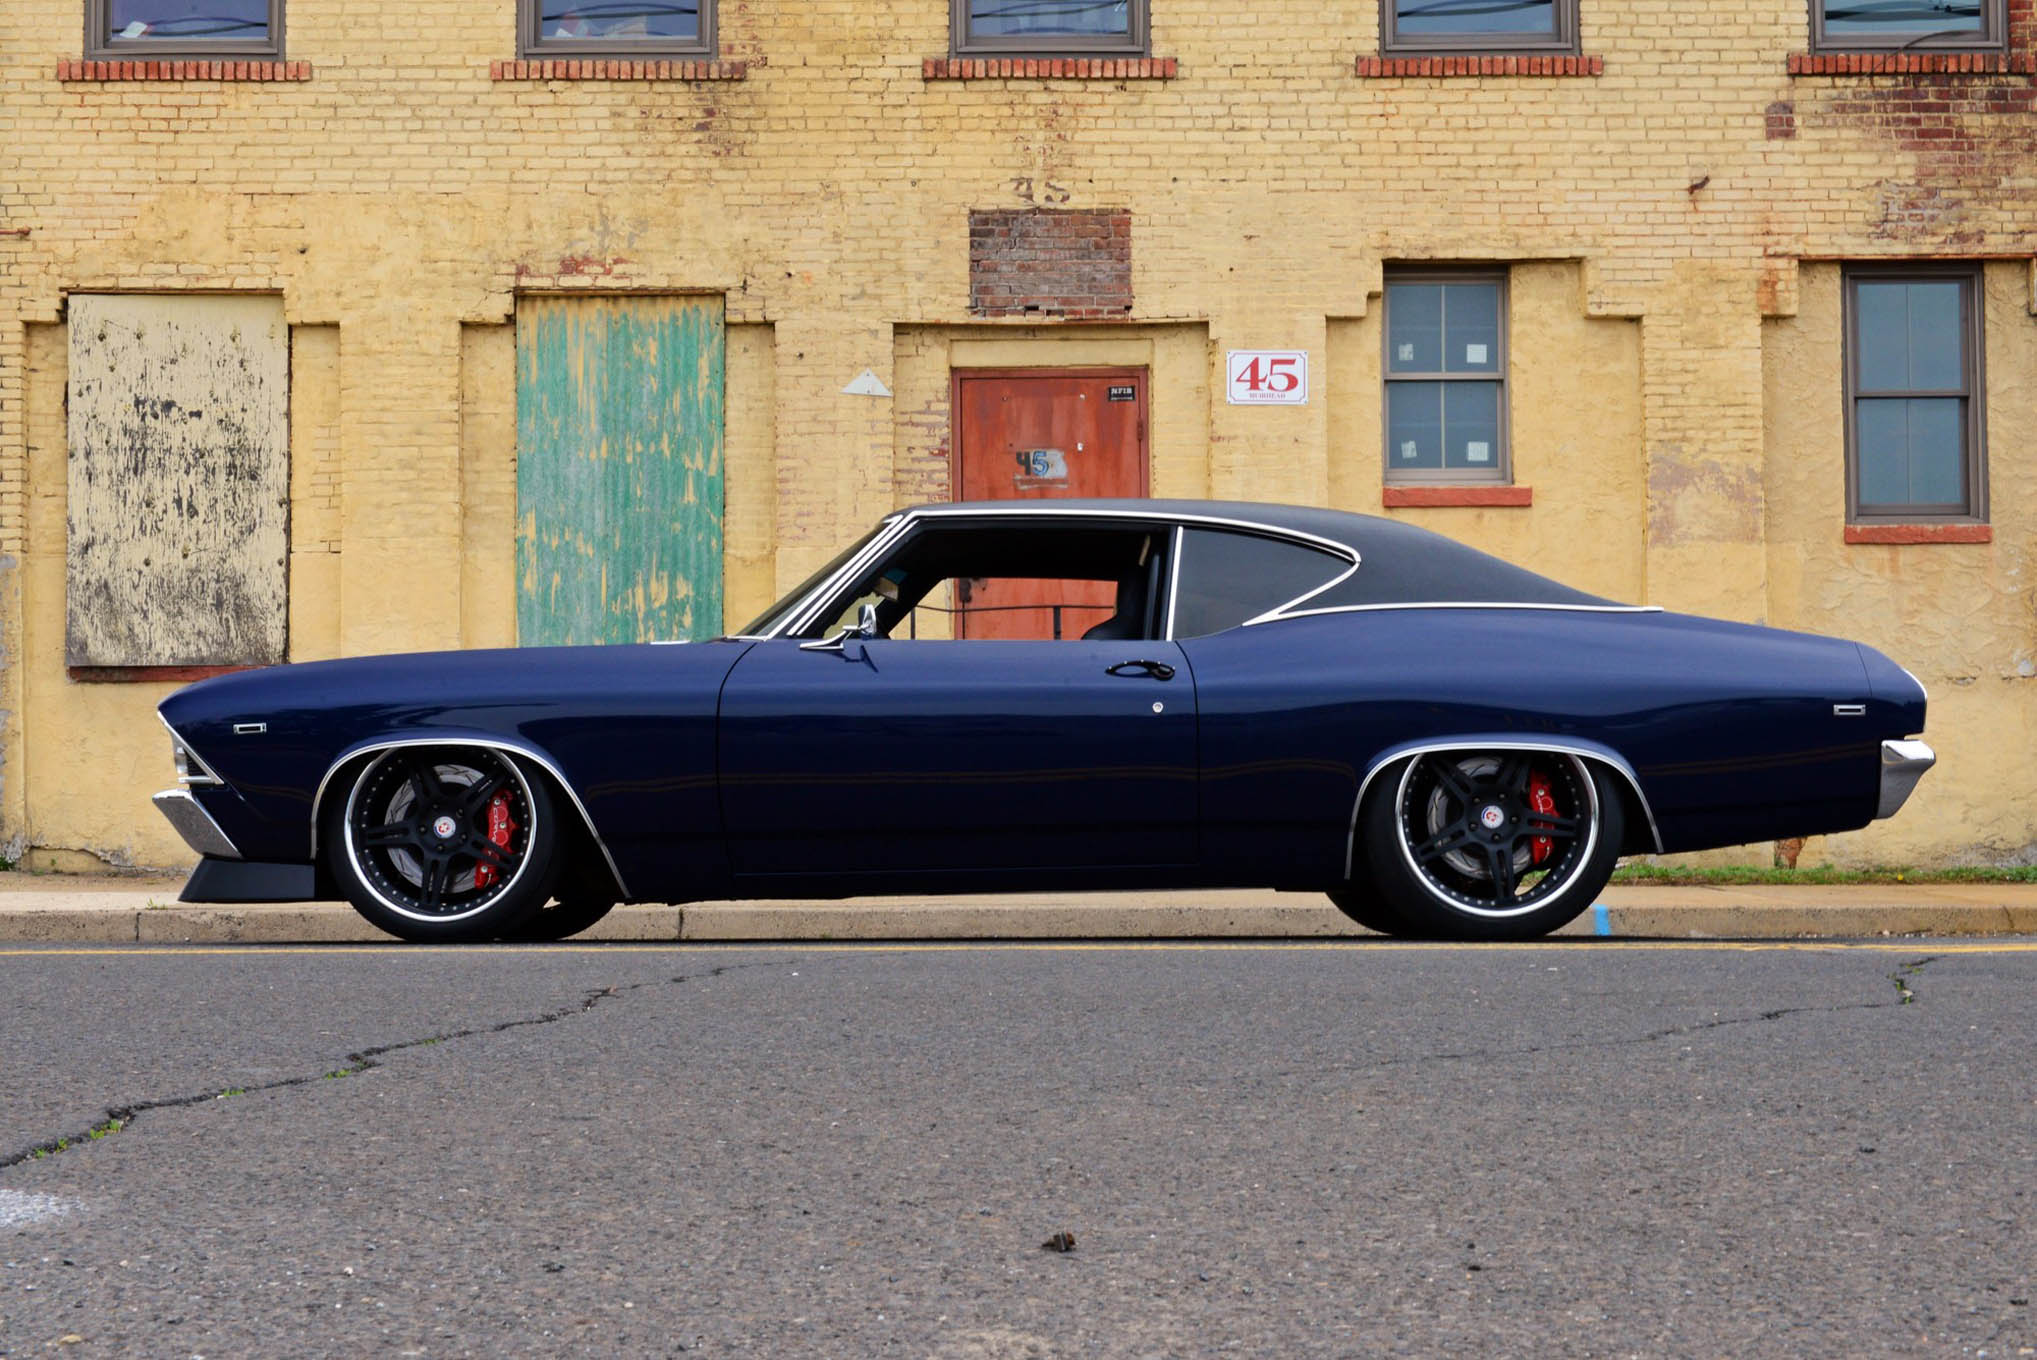 Nick's 1969 Chevelle was designed to sit 4-6 inches from ground to top of the roof, and the rockers sit just 4.75 inches from the ground up front and 5.75 inches near the rear wheel well. Nick rides with a C6 corvette suspension up front, and a custom four-link suspension in the rear. In the trunk you'll find a custom cantilevered rocker rear suspension designed and built by the owner. Double adjustable coilovers with Ride Tech springs and splined sway bars up front and out back round out the suspension mods.